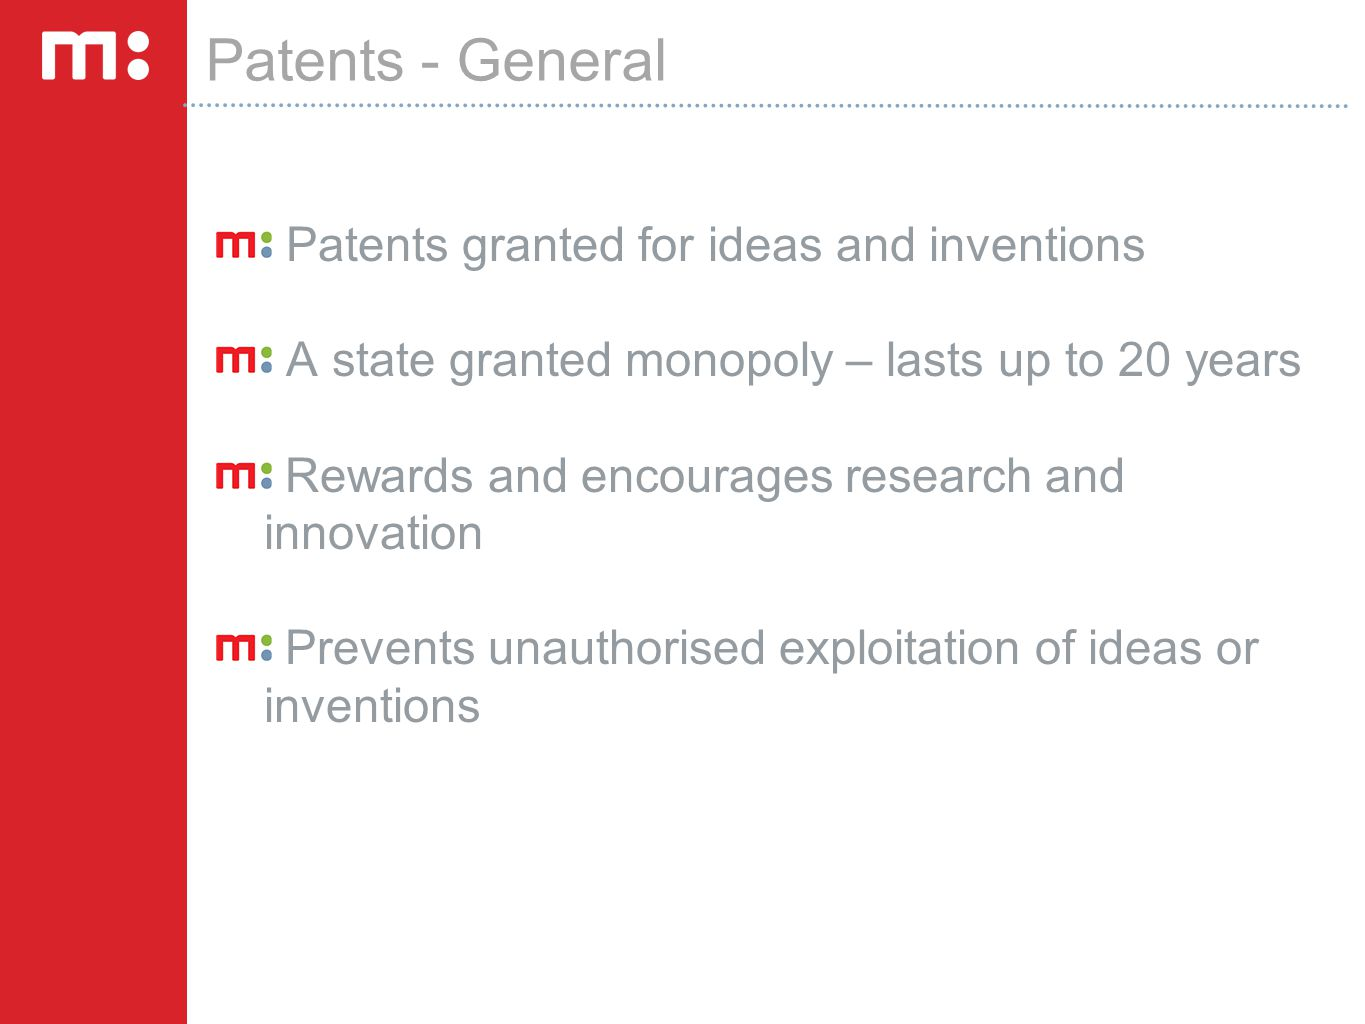 Patents - General Patents granted for ideas and inventions A state granted monopoly – lasts up to 20 years Rewards and encourages research and innovation Prevents unauthorised exploitation of ideas or inventions